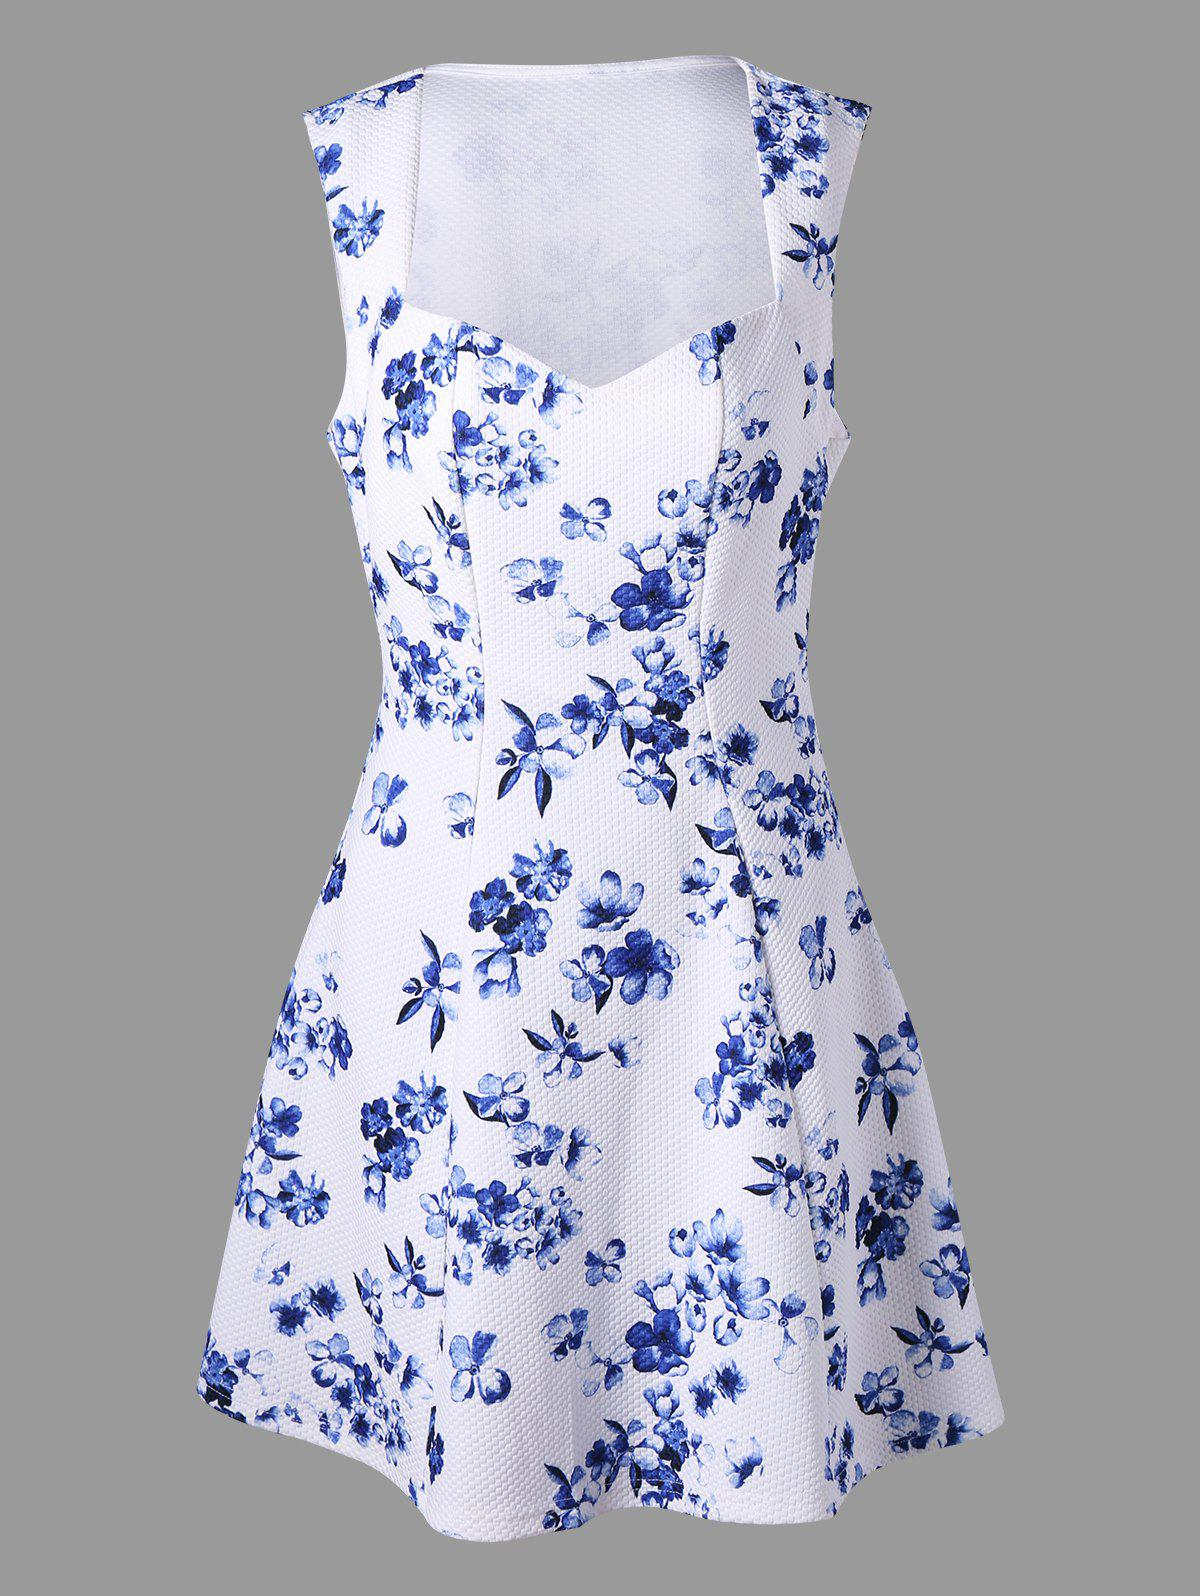 Floral Print Sleeveless Skater Dress - WHITE XL